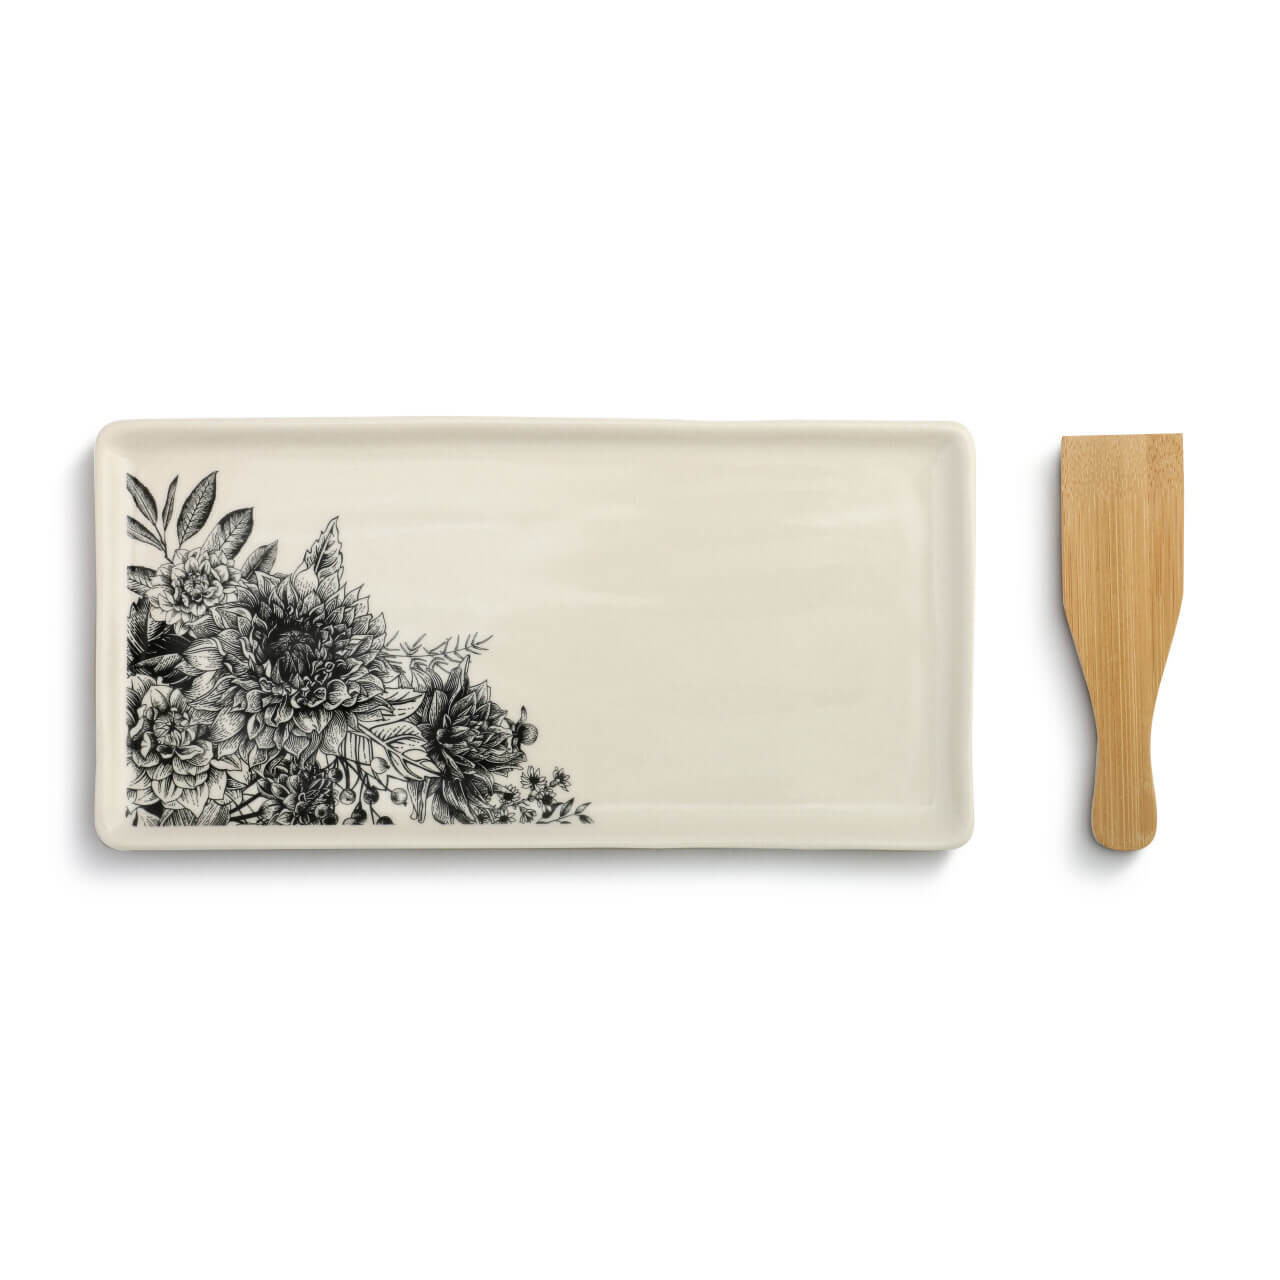 This appetizer tray with spatula makes serving easy. The stoneware plate features a detailed floral design and comes with a wooden bamboo utensil.